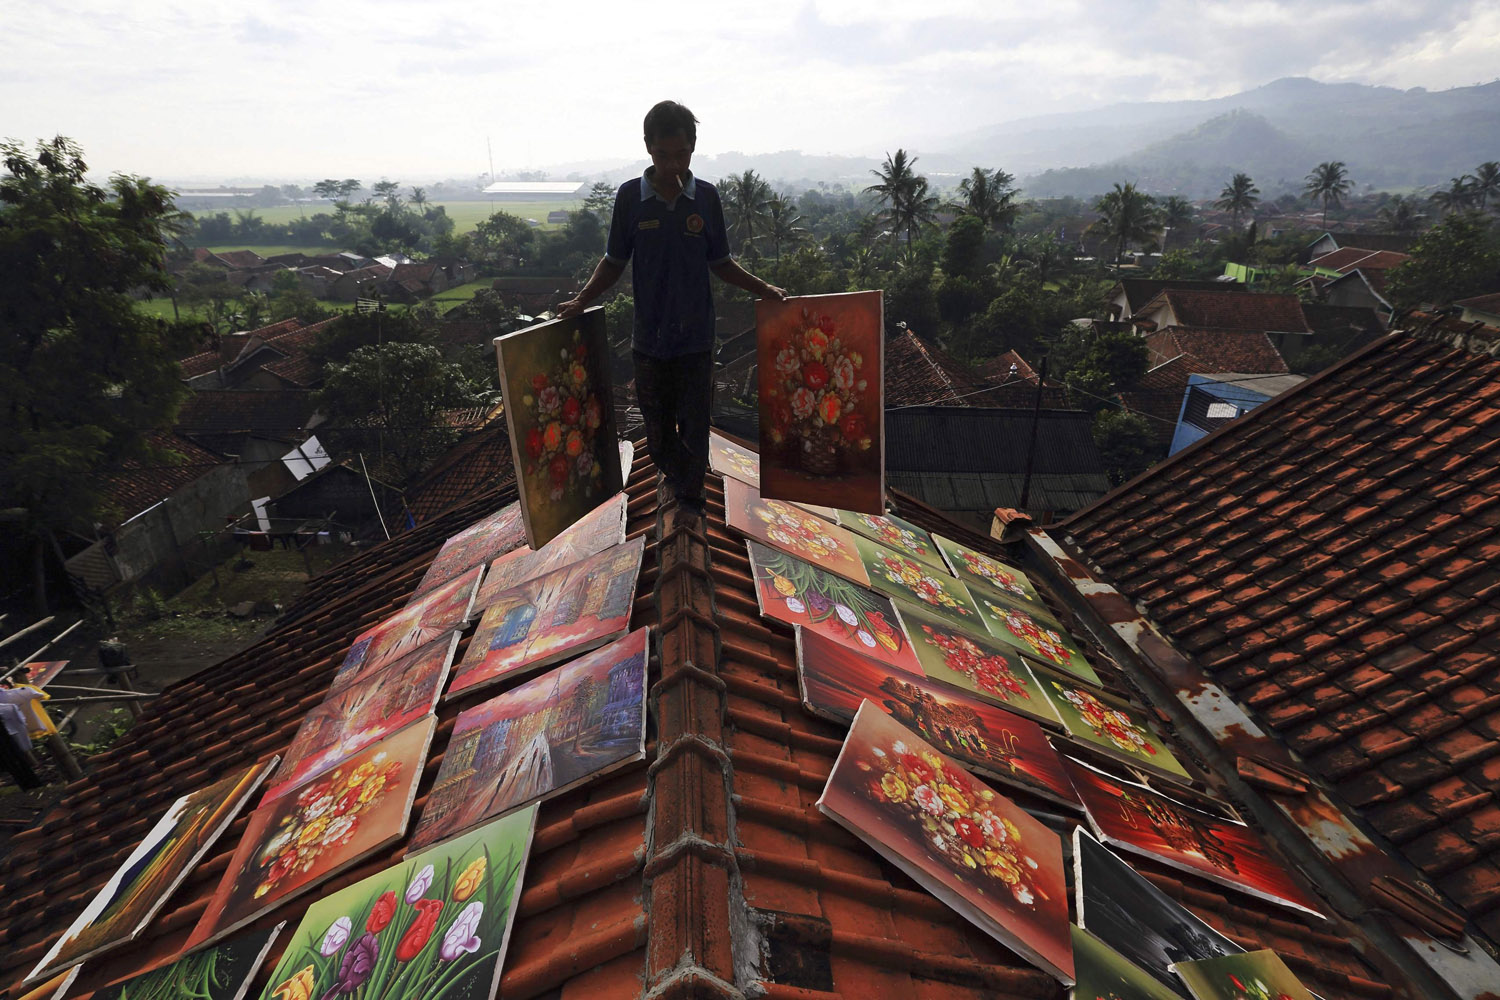 Mar. 20, 2014. An artist walks across the roof of his house while carrying paintings to be dried at Jelekong village near Bandung, in Indonesia's West Java province. The people of Jelekong village earn their living by selling their paintings.